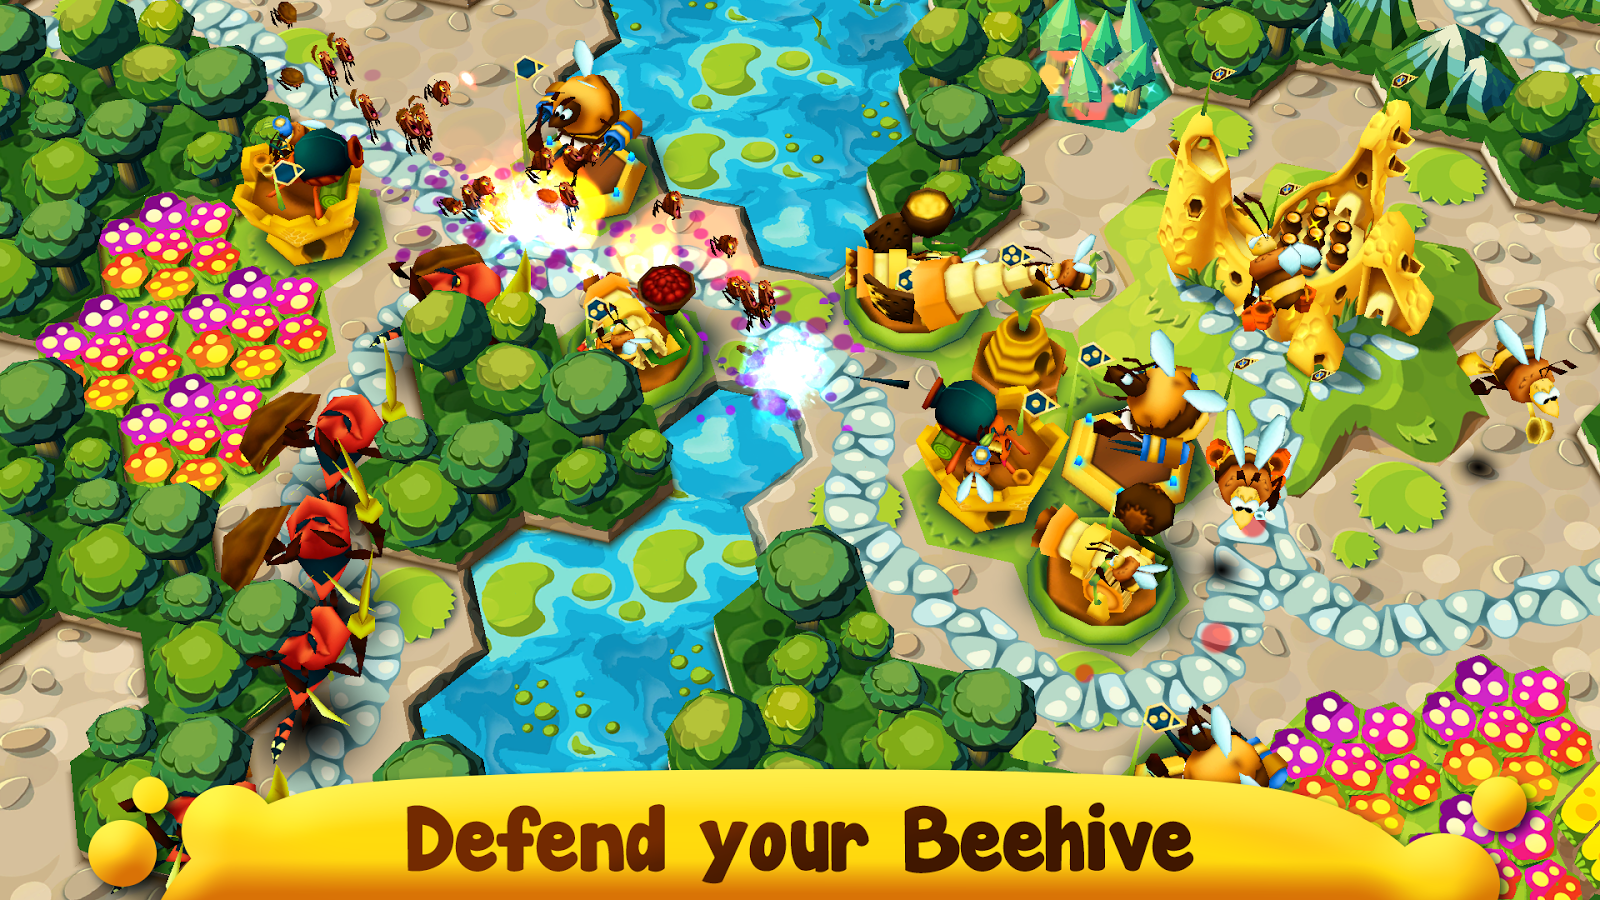 BeeFense - Fortress Defense Screenshot 6